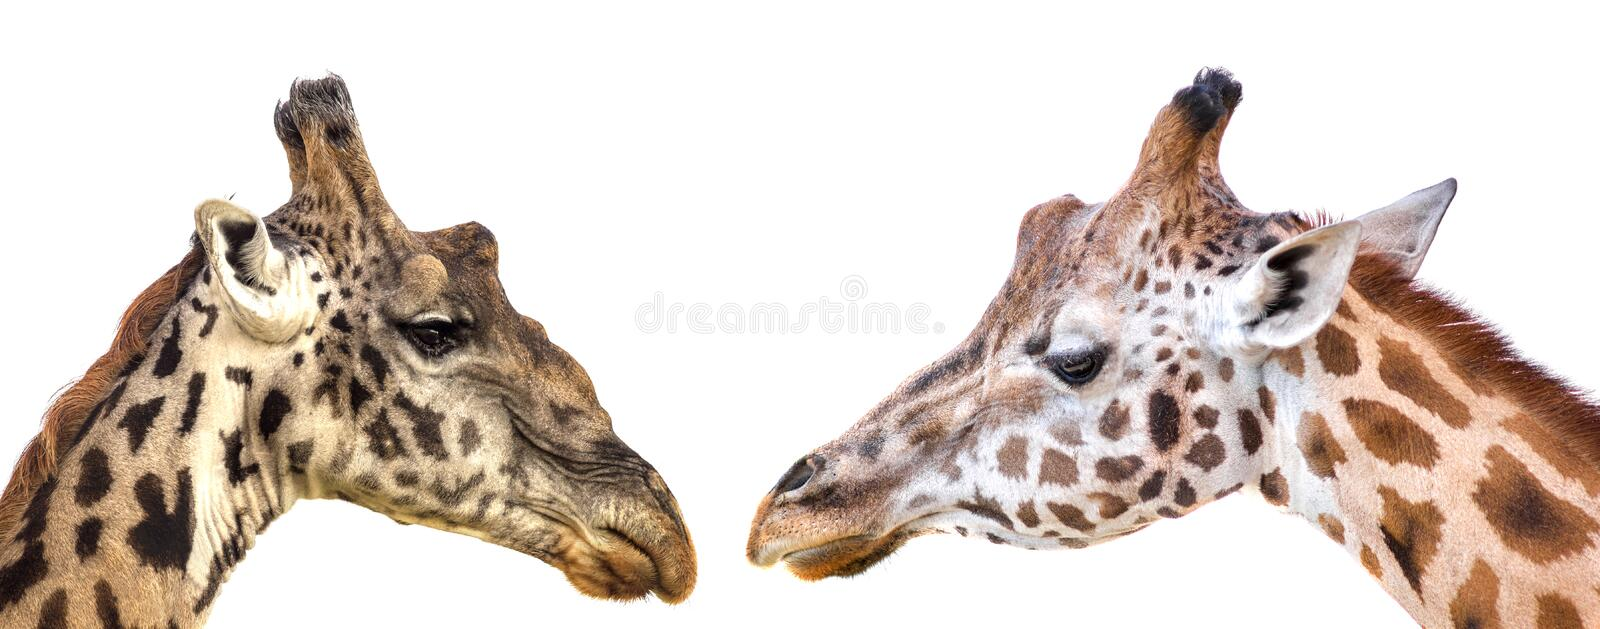 Giraffe heads on white background stock photo